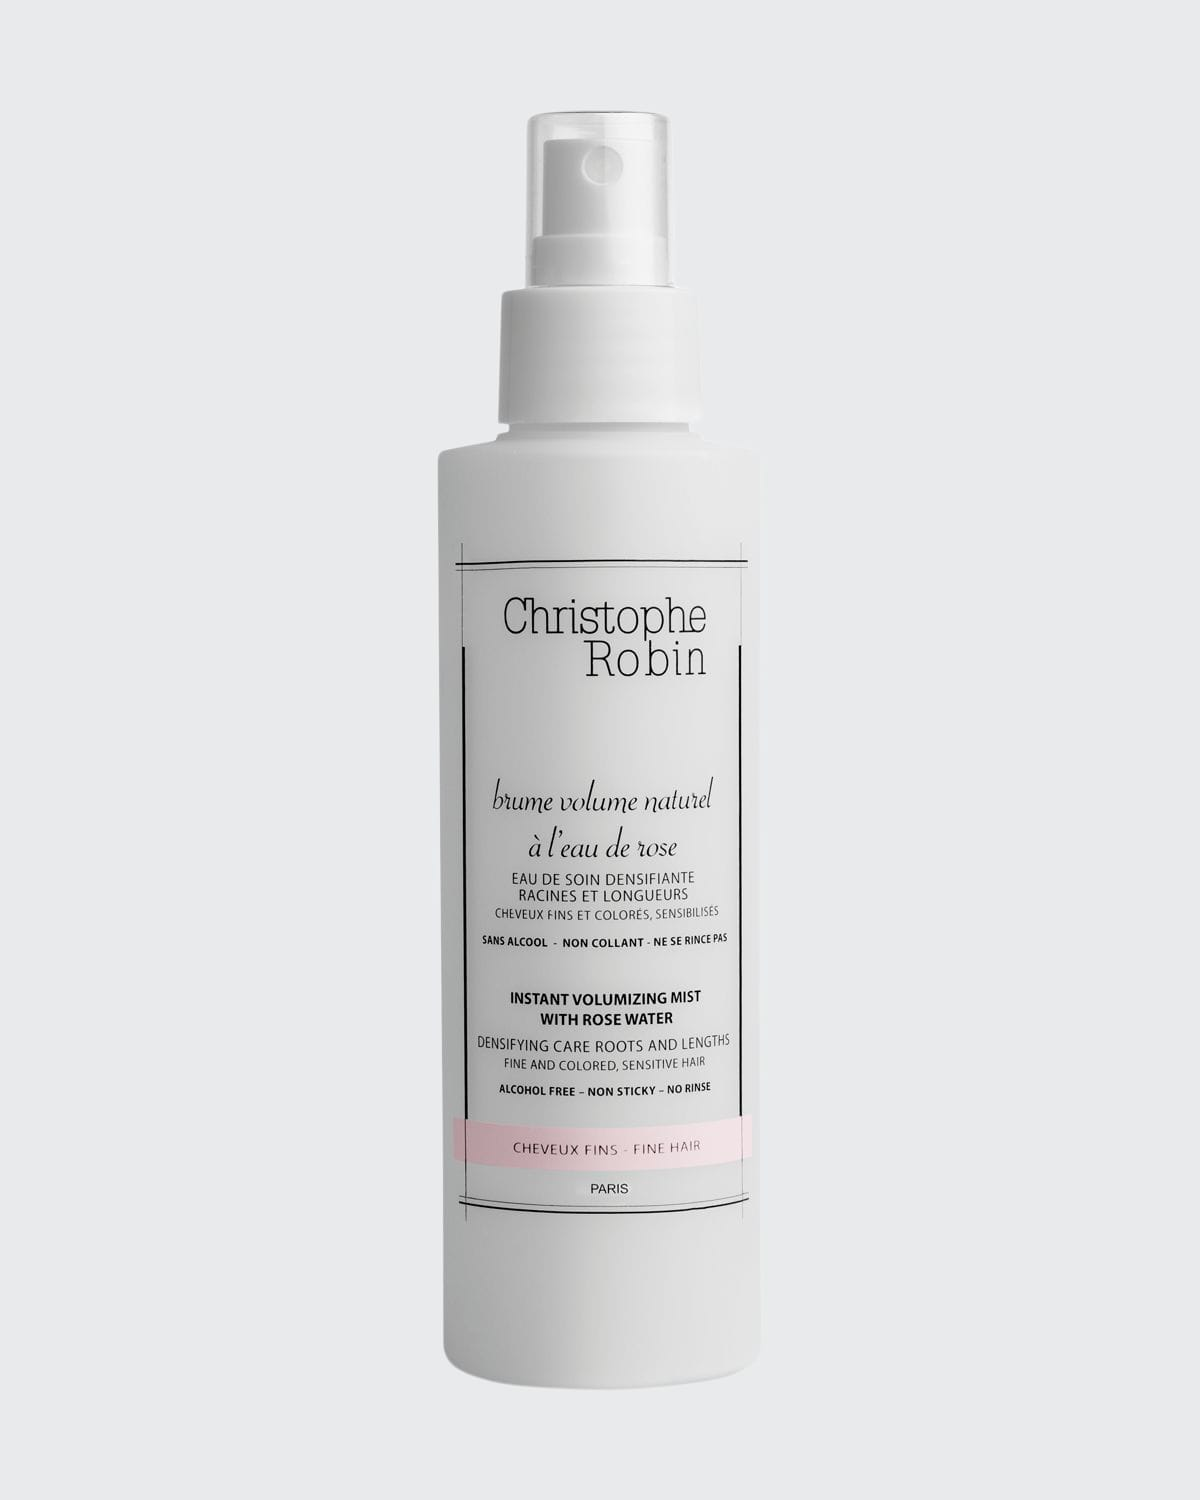 Instant Volumizing Mist with Rosewater